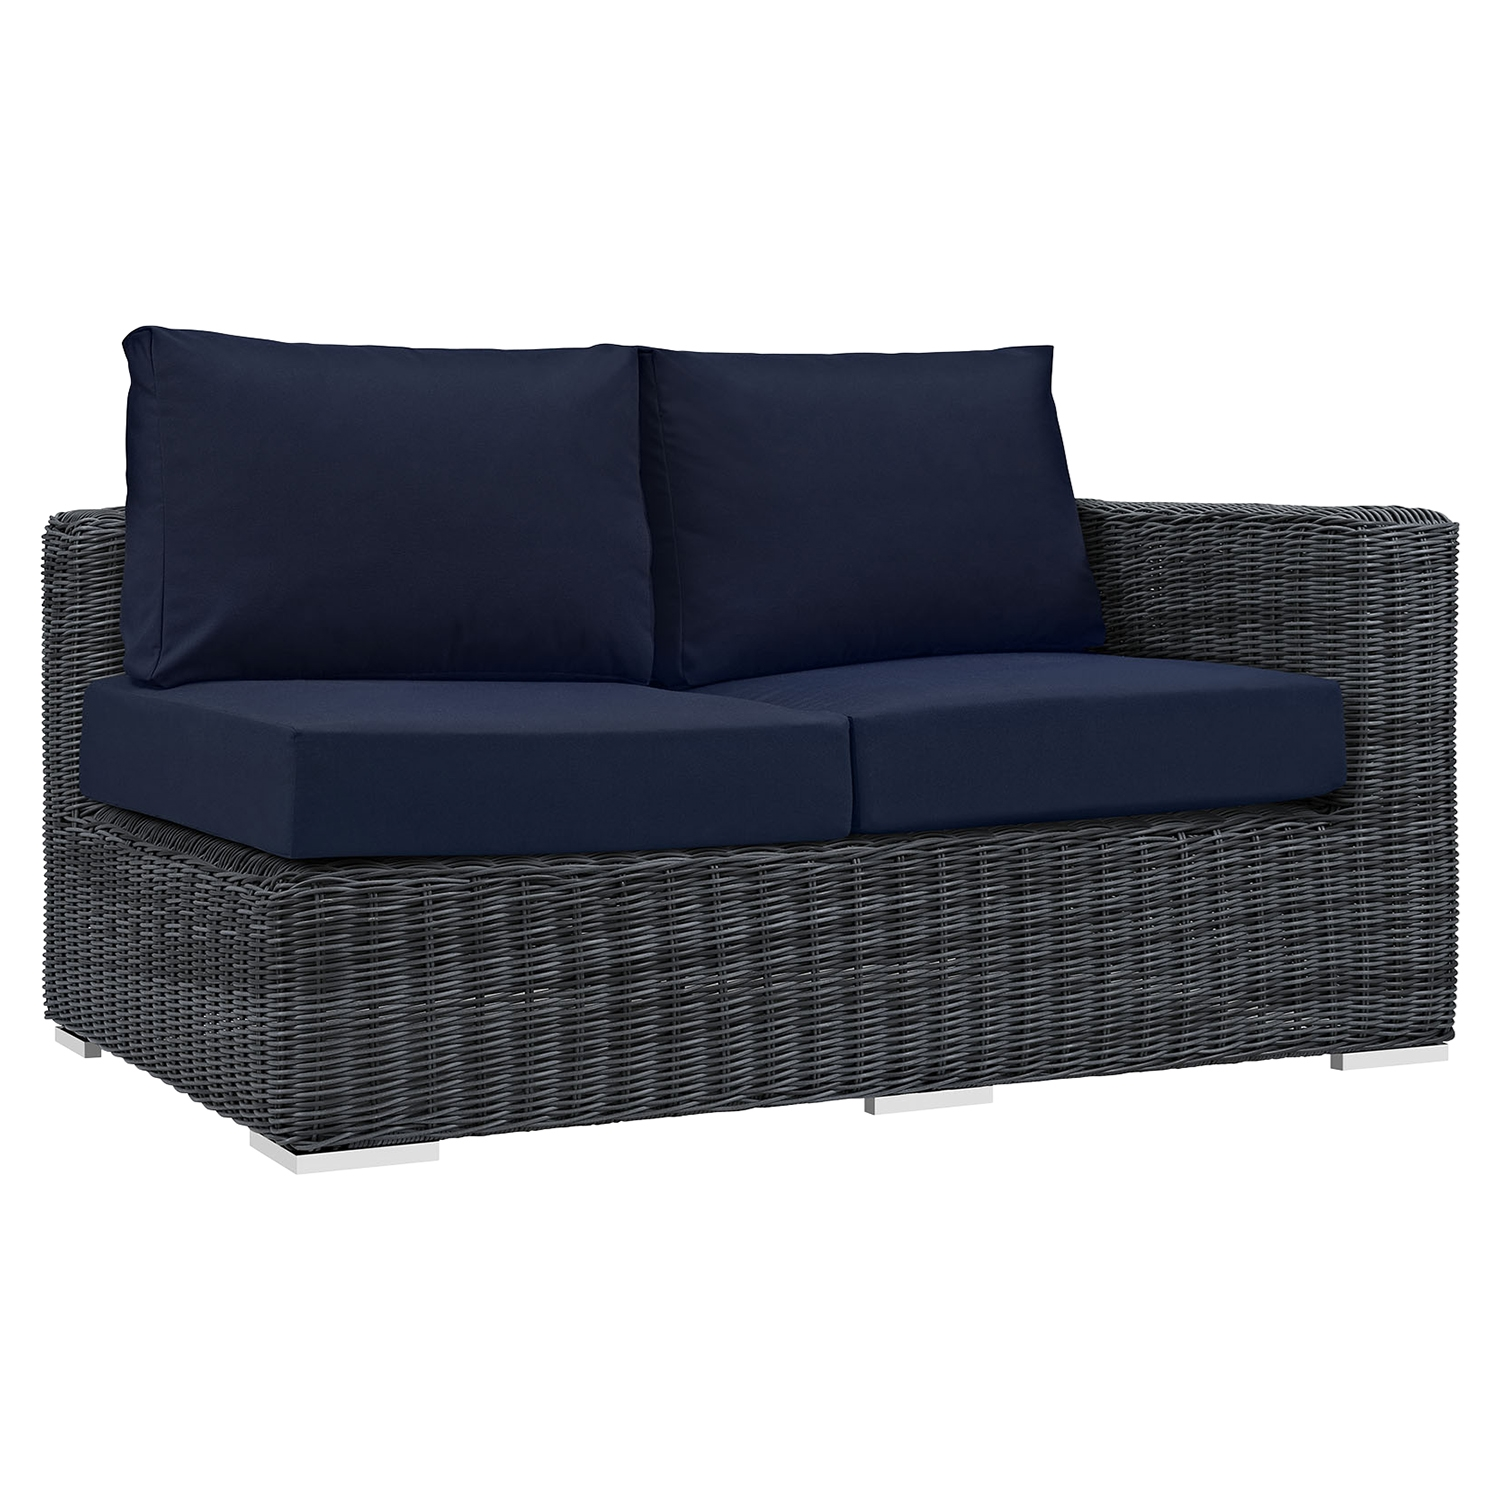 Summon 11 Pieces Outdoor Patio Sectional Set - Sunbrella Canvas Navy - EEI-1899-GRY-NAV-SET